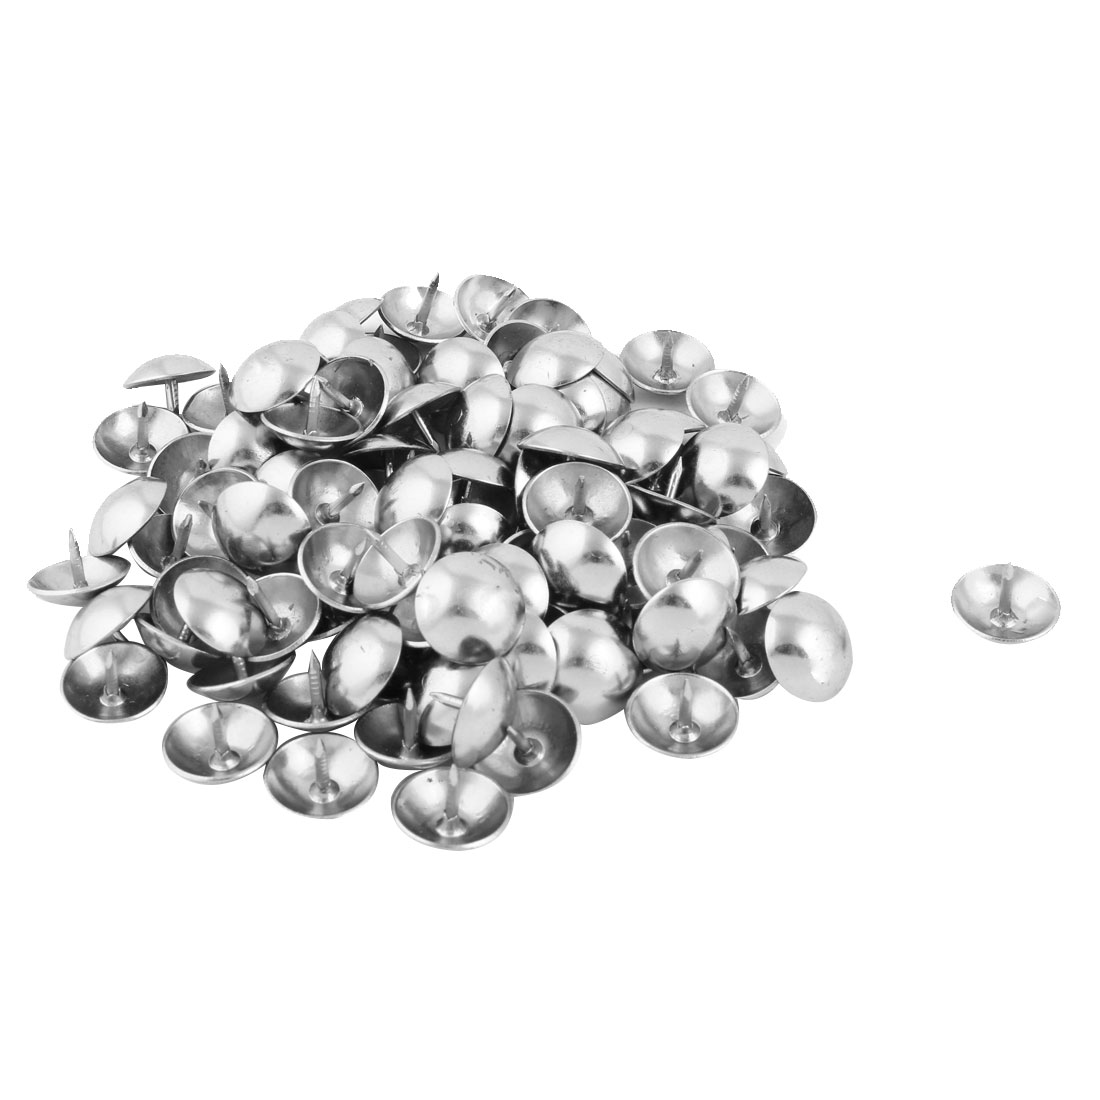 Table Case Metal Upholstery Thumb Tack Nail Pushpin Silver Tone 14 x 12mm 100pcs